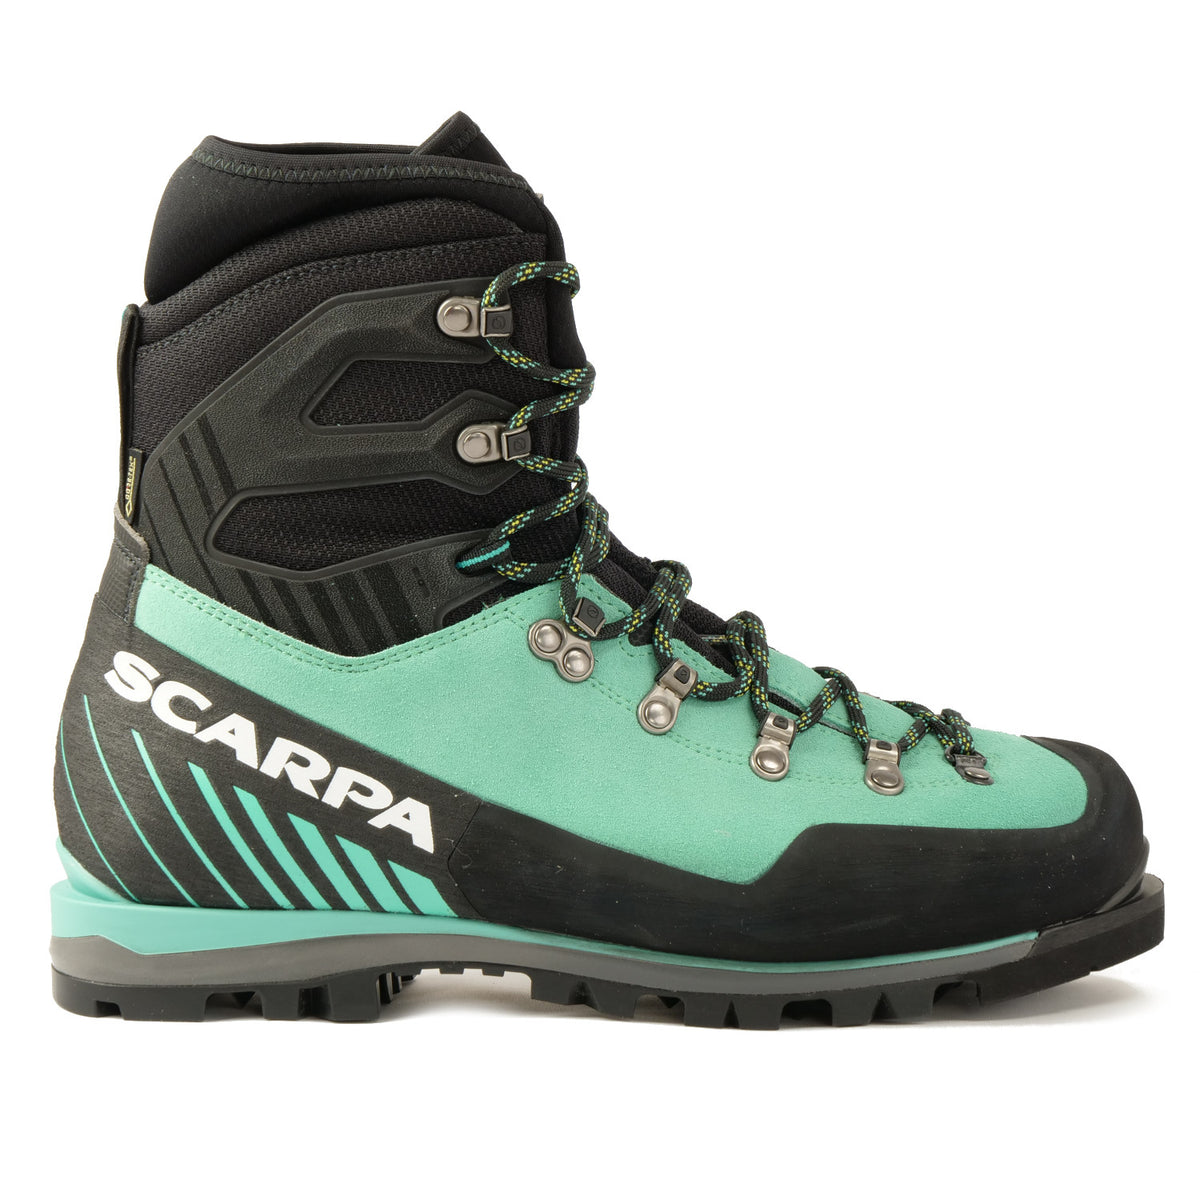 Side view of the Scarpa Mont Blanc Pro GTX Womens with Mint Green Perwanger outer and black rubber and flexible sock and large scarpa logo in white